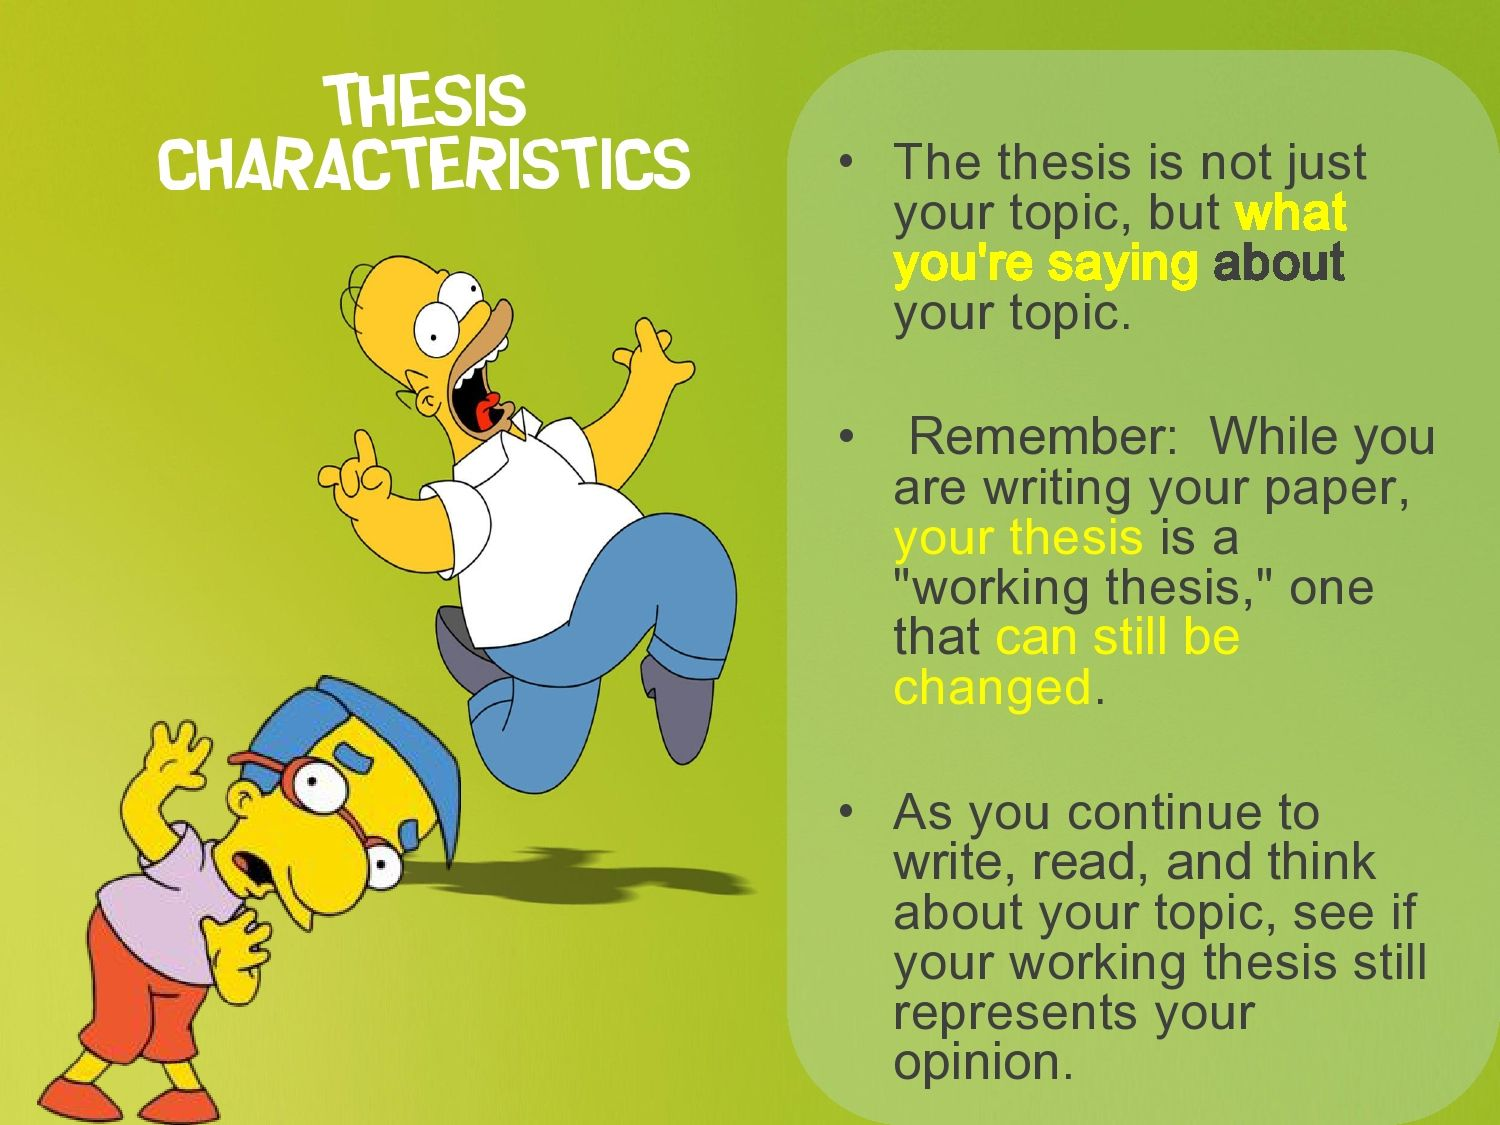 teaching thesis sentences A thesis statement is usually the last sentence of the first paragraph of a composition it states the topic of the paper and the argument the author will make about.